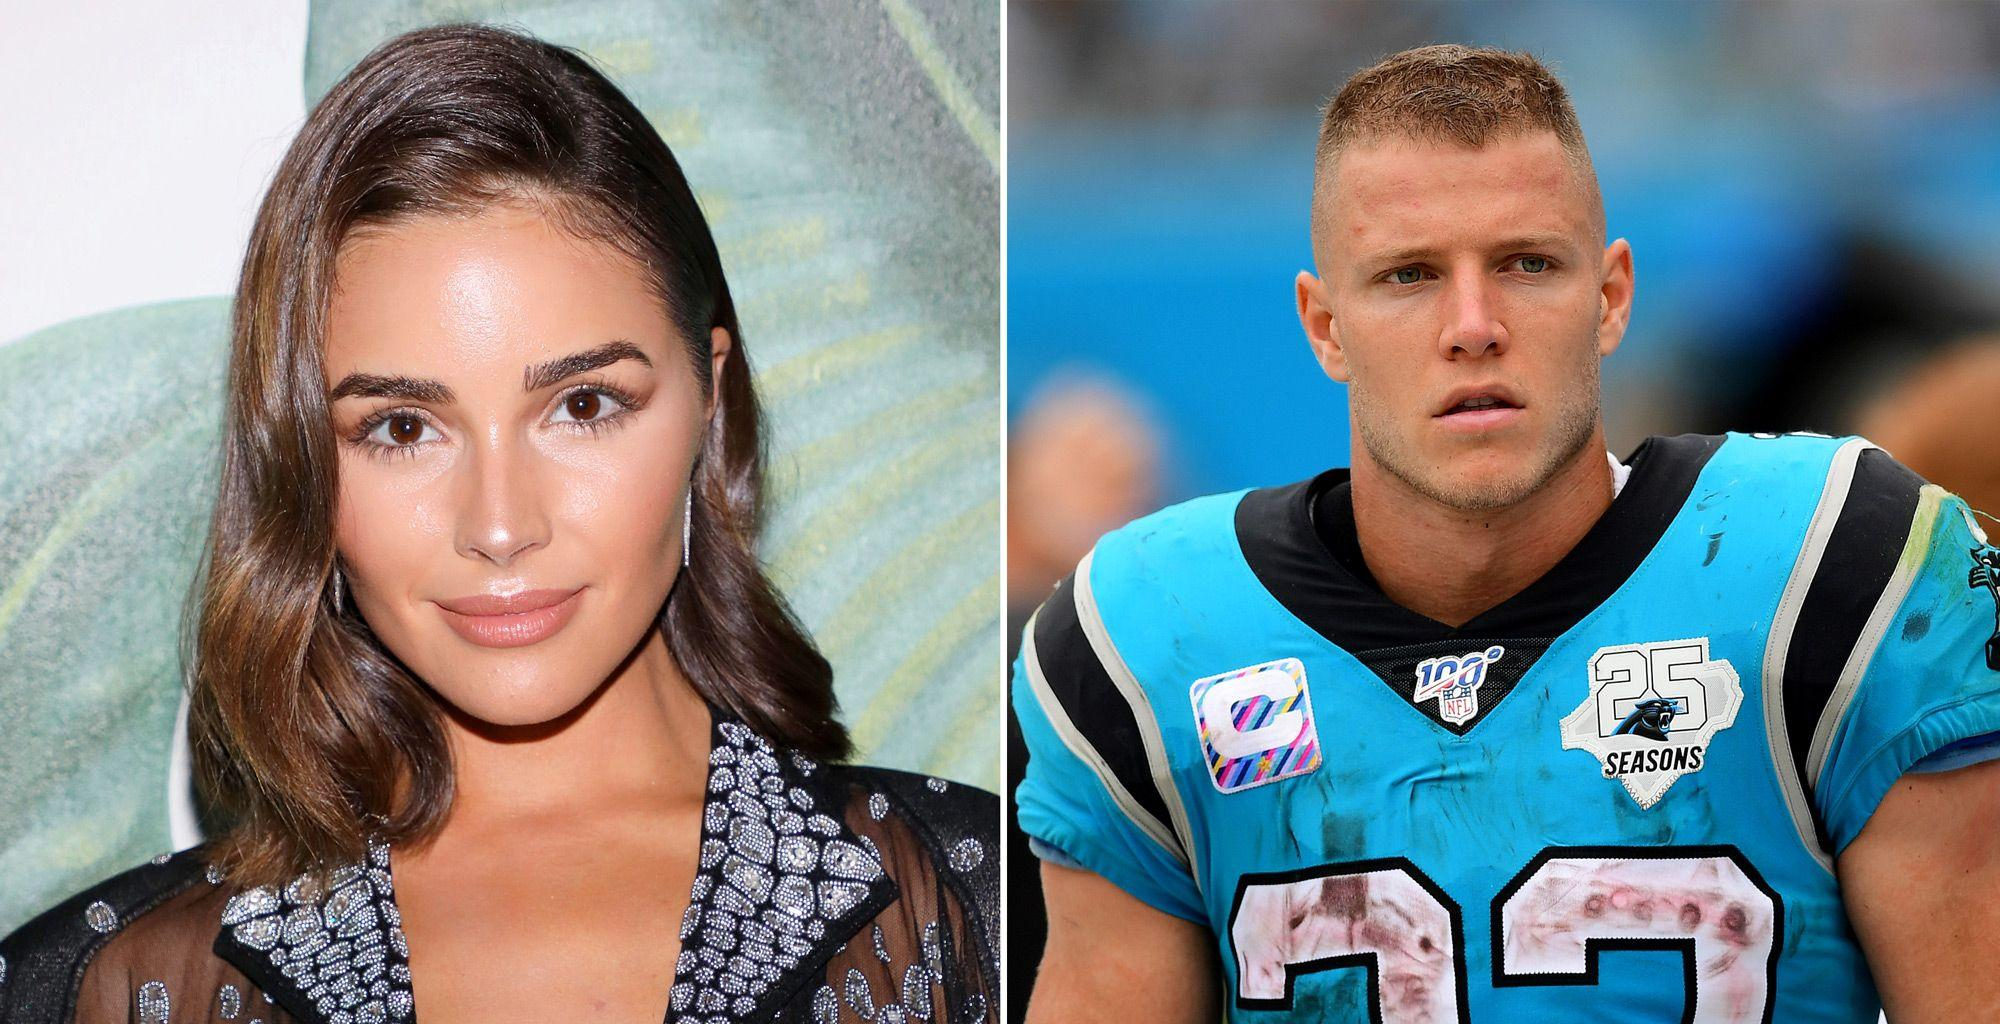 Olivia Culpo's Boyfriend Christian McCaffrey Flirts With Her After Sharing Sultry Shot And It's Super Cute!